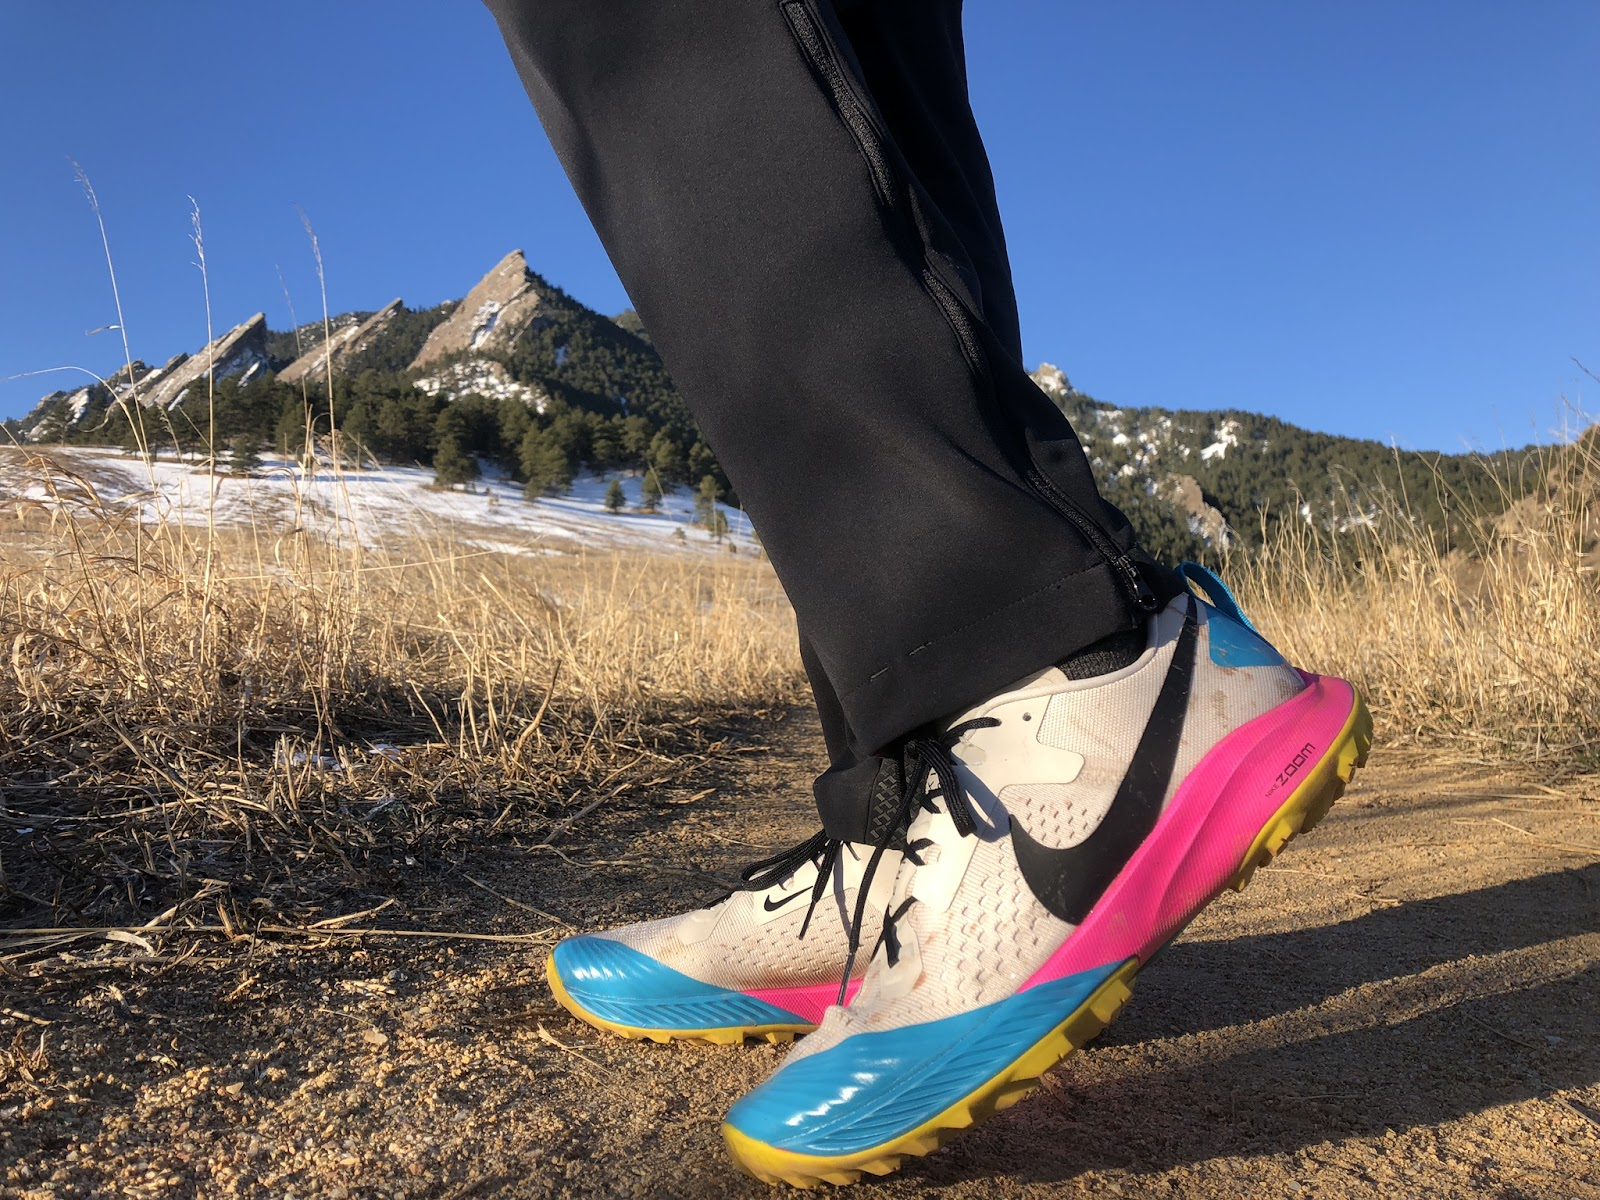 Road Trail Run: Nike Air Zoom Terra Kiger 5 Multi Tester Review